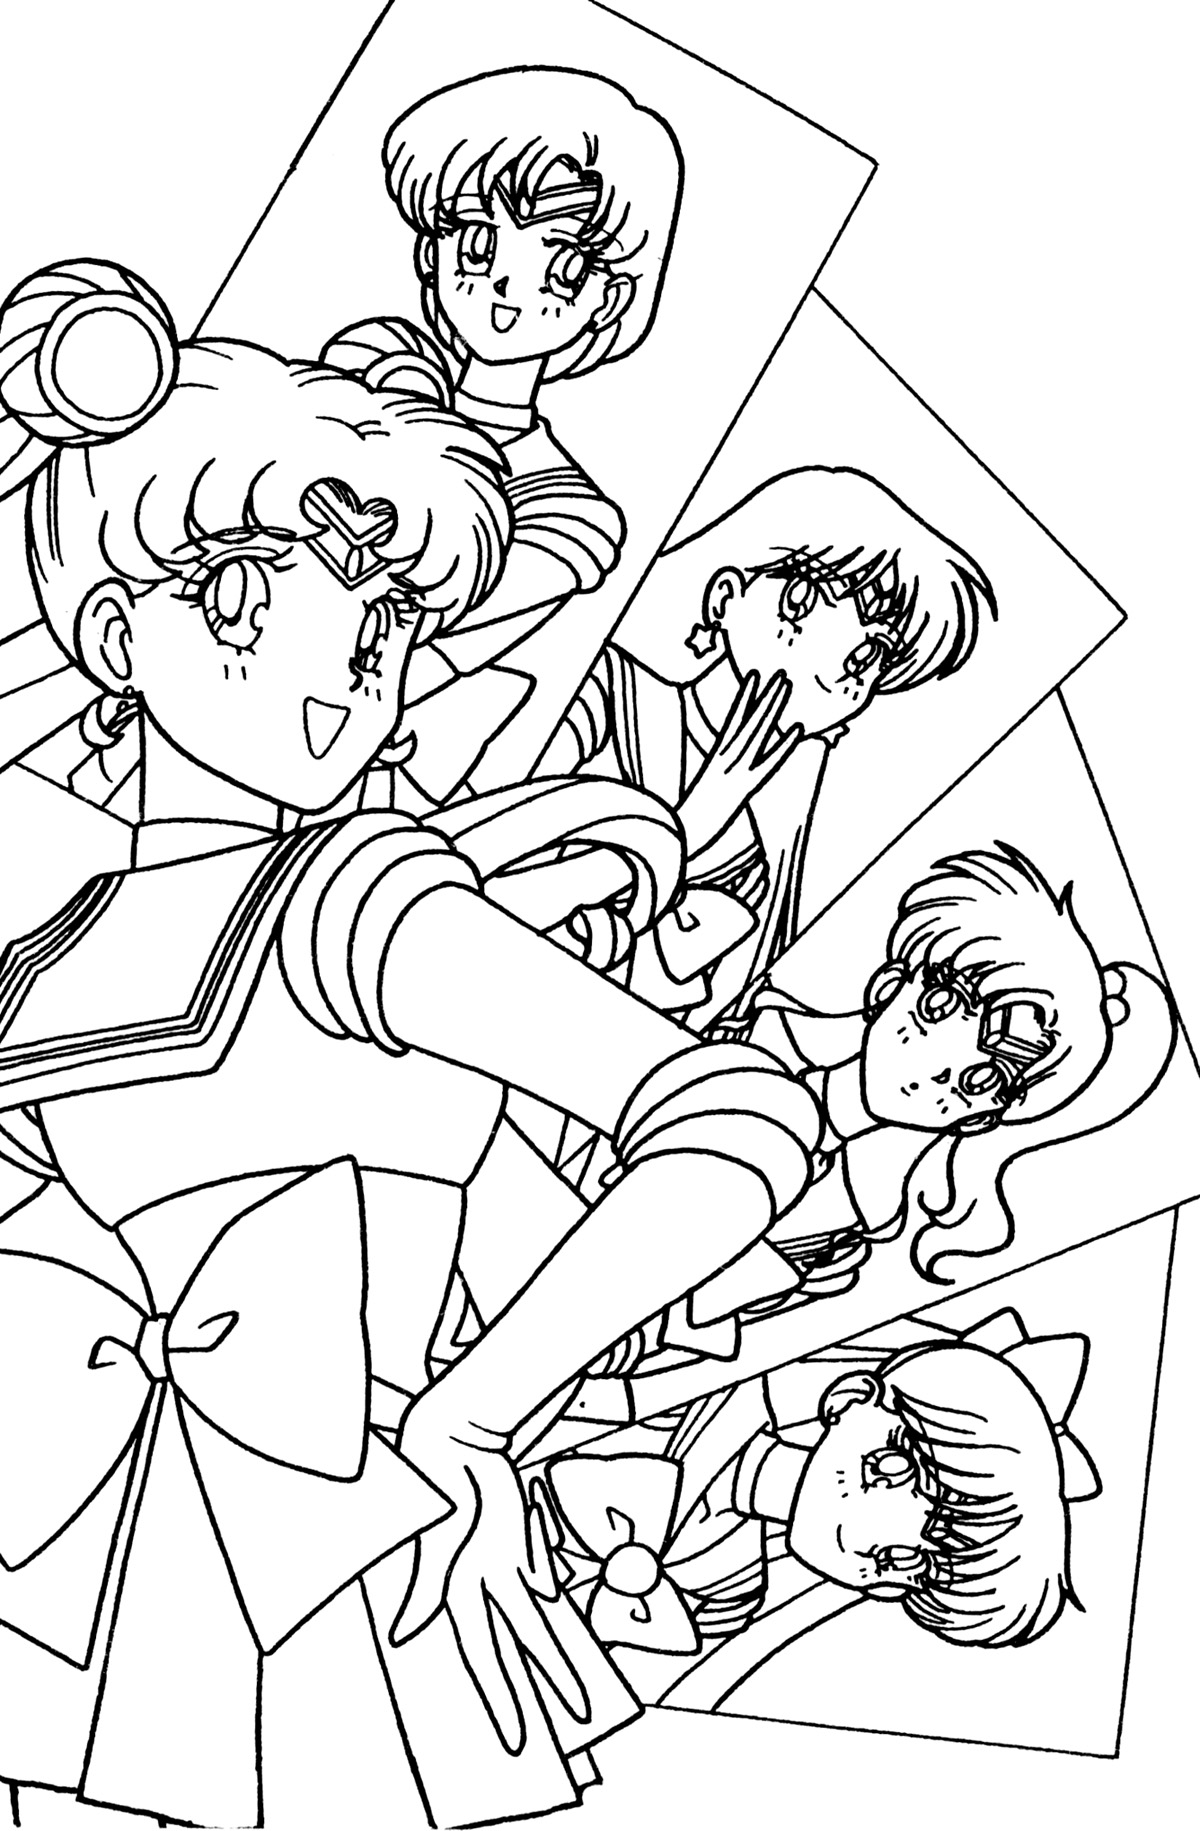 Tsuki matsuri the sailormoon coloring book archive for Coloring pages sailor moon